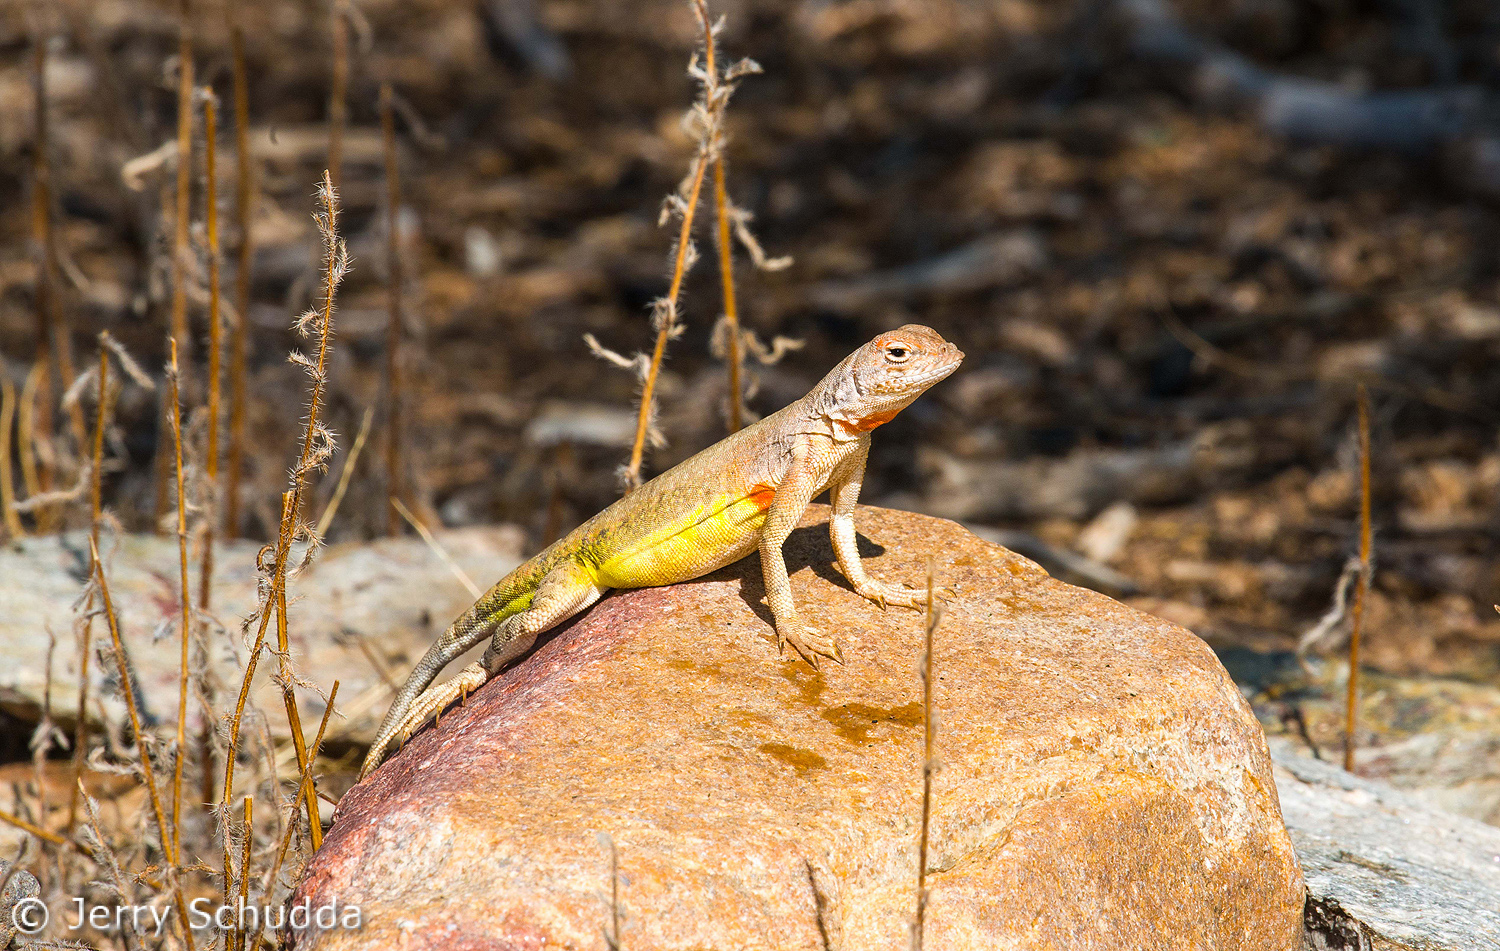 Lesser Earless Lizard 2